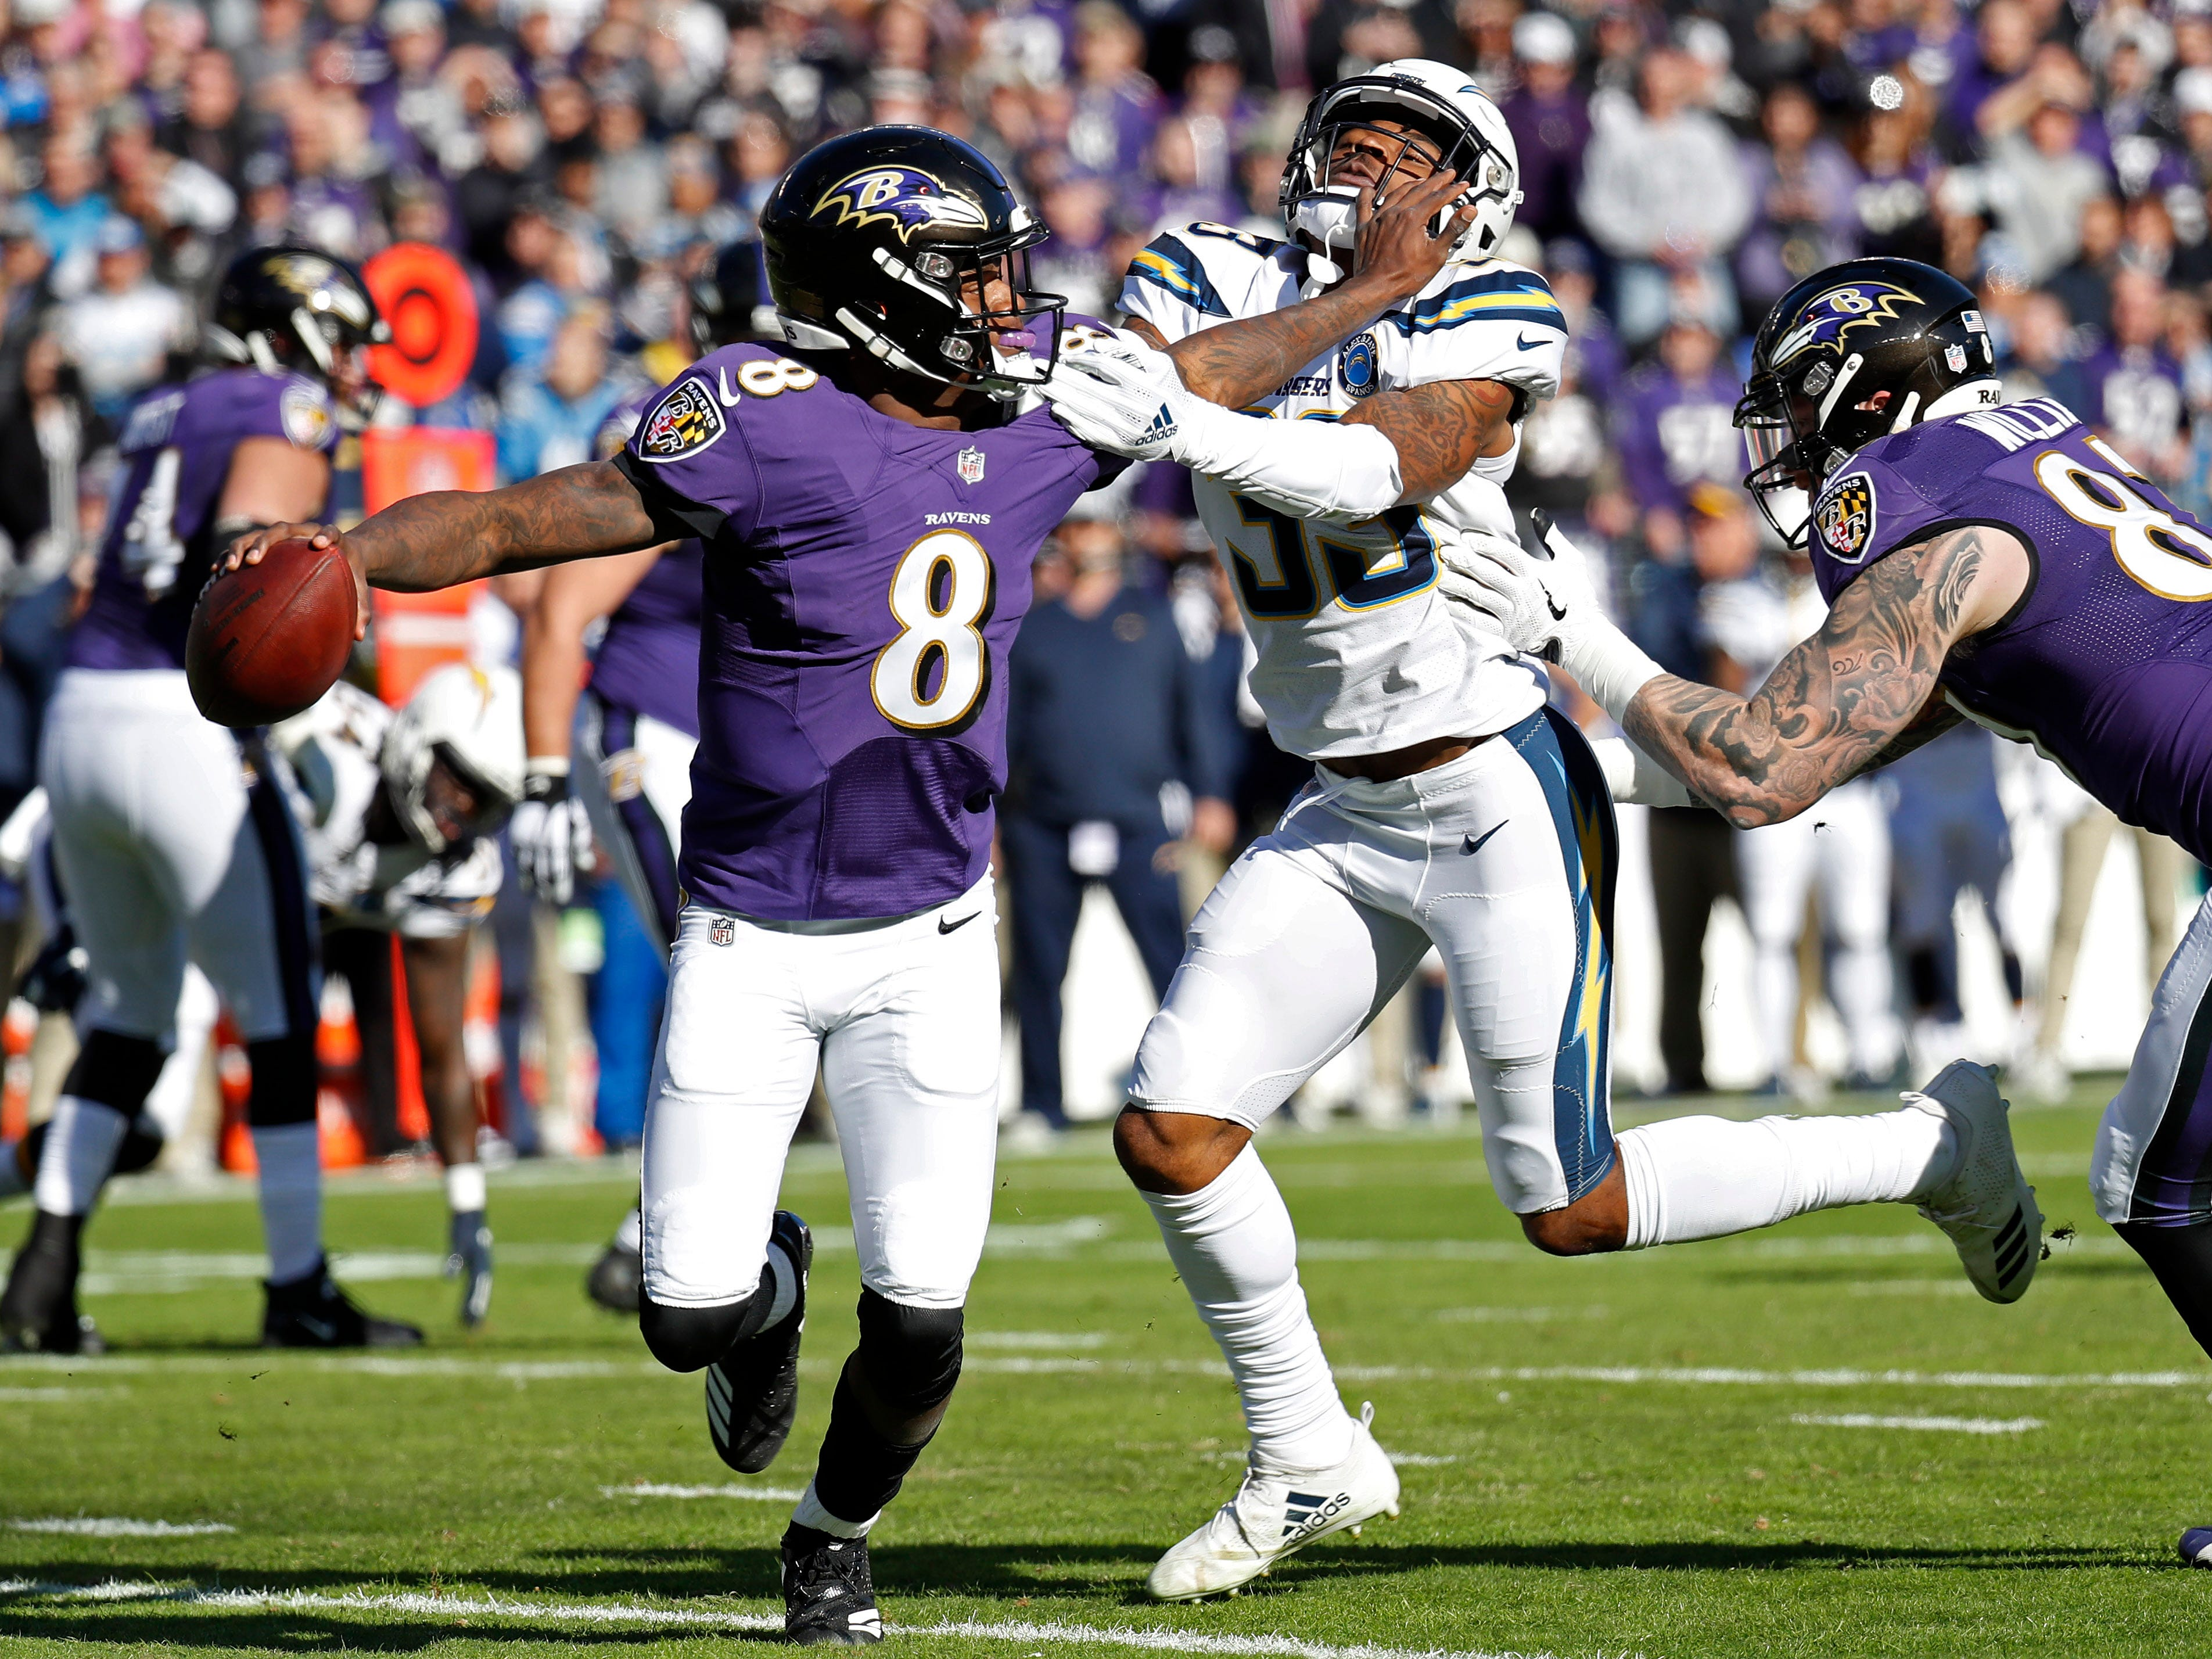 Baltimore Ravens quarterback Lamar Jackson (8) scrambles from Los Angeles Chargers free safety Derwin James (33) in the first quarter in a AFC Wild Card playoff football game at M&T Bank Stadium.